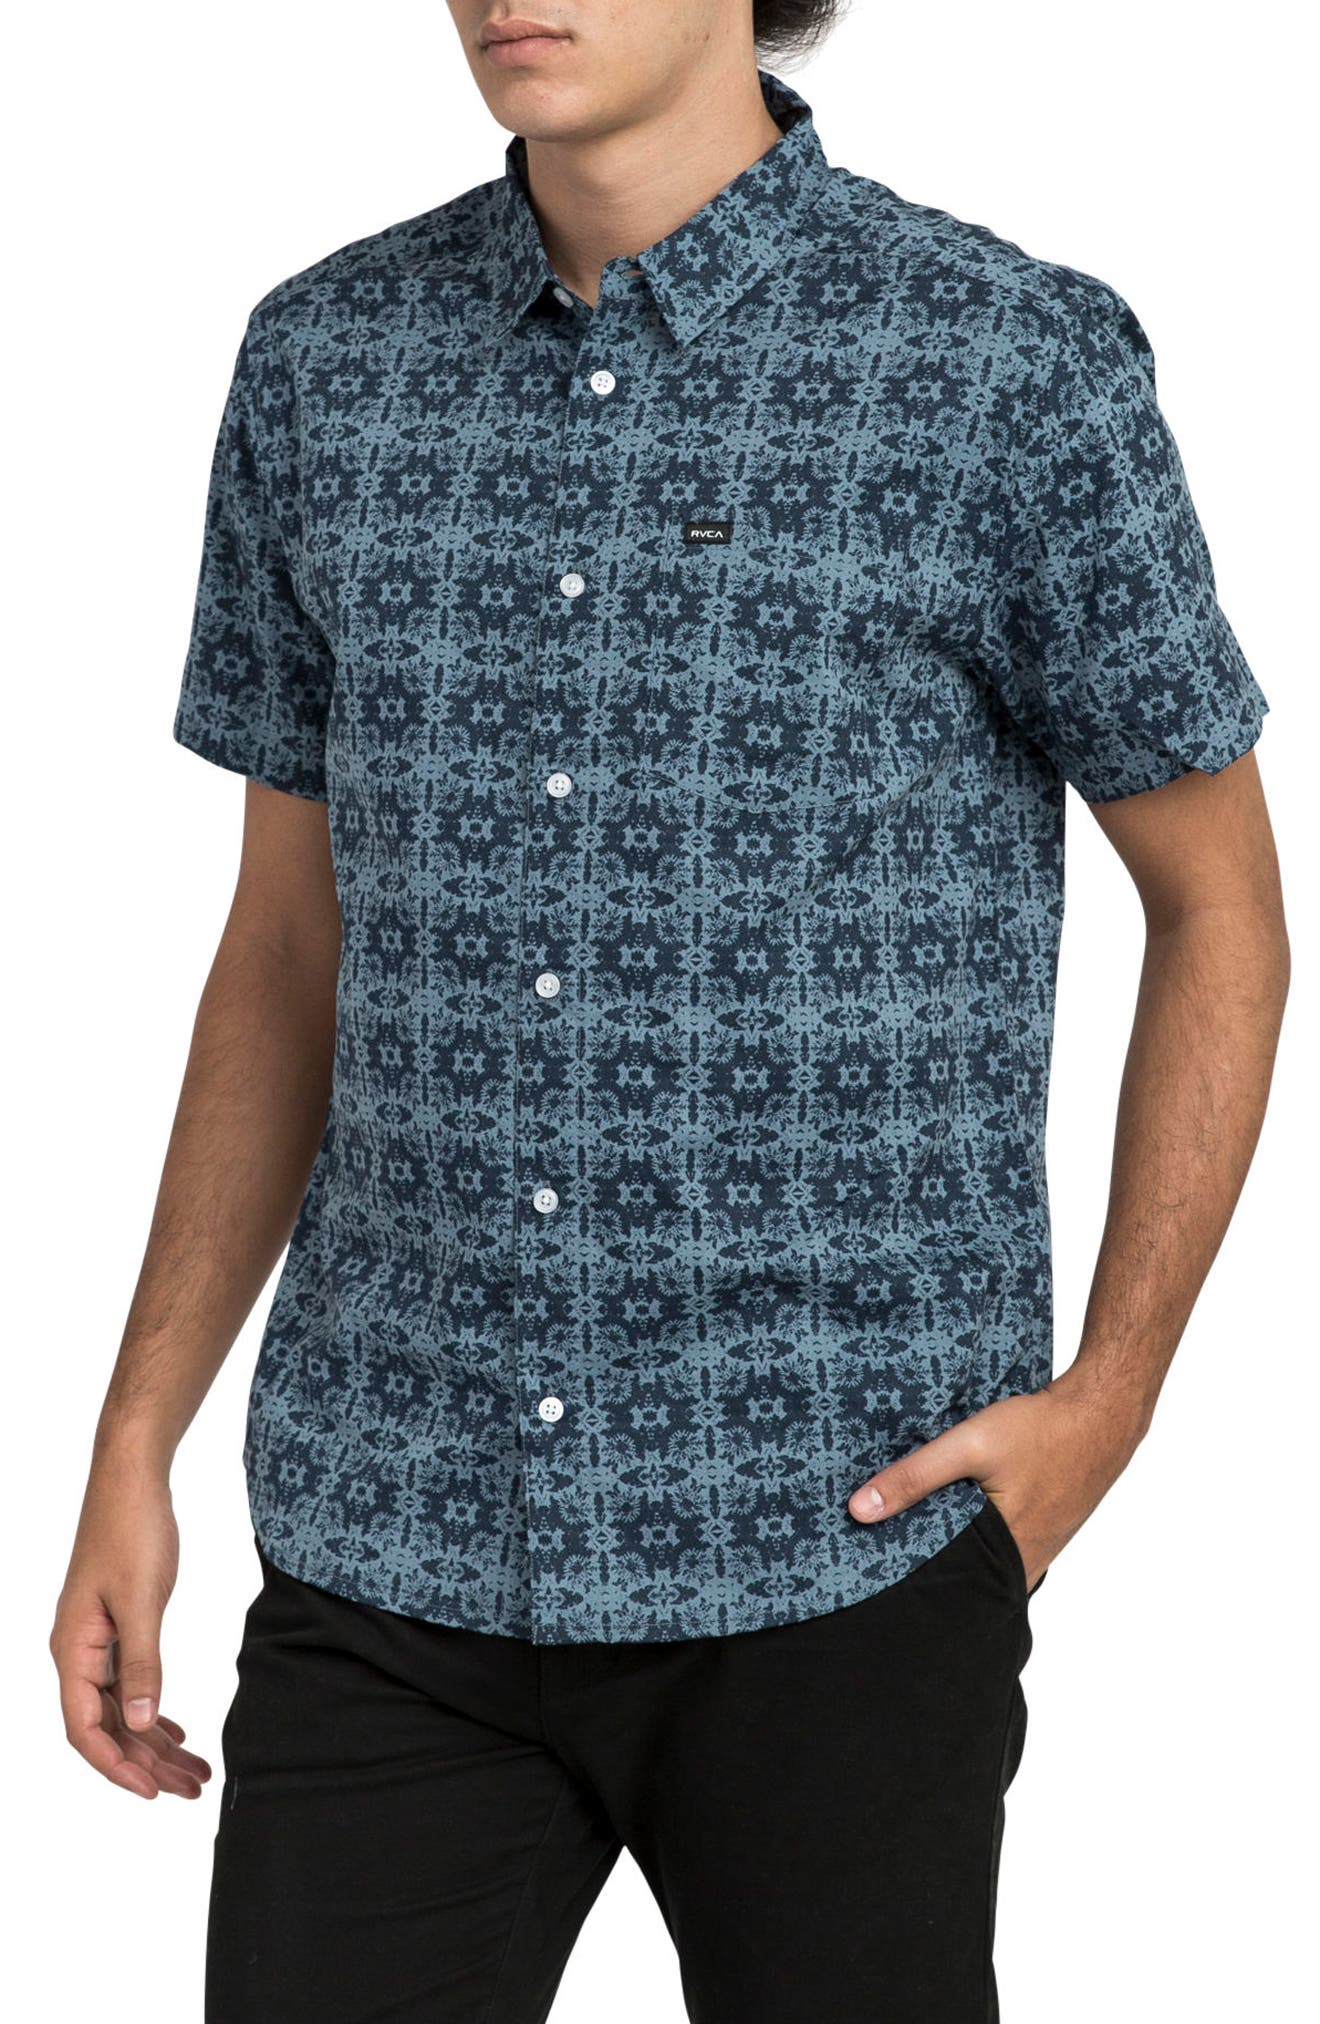 Visions Short Sleeve Shirt,                             Alternate thumbnail 3, color,                             407